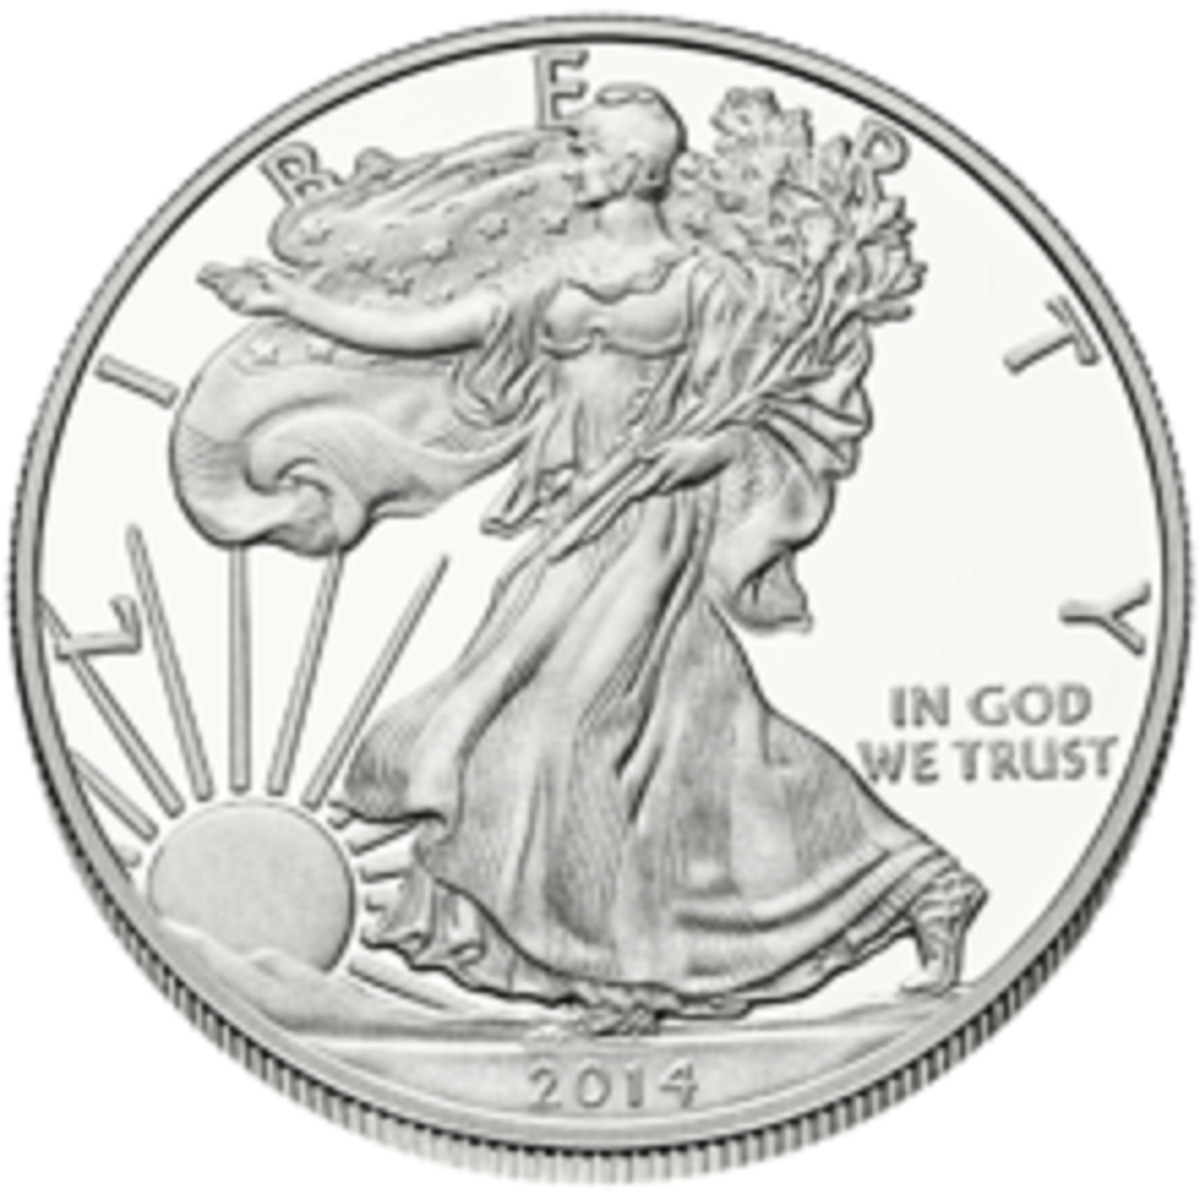 How to Spot a Counterfeit American Silver Eagle